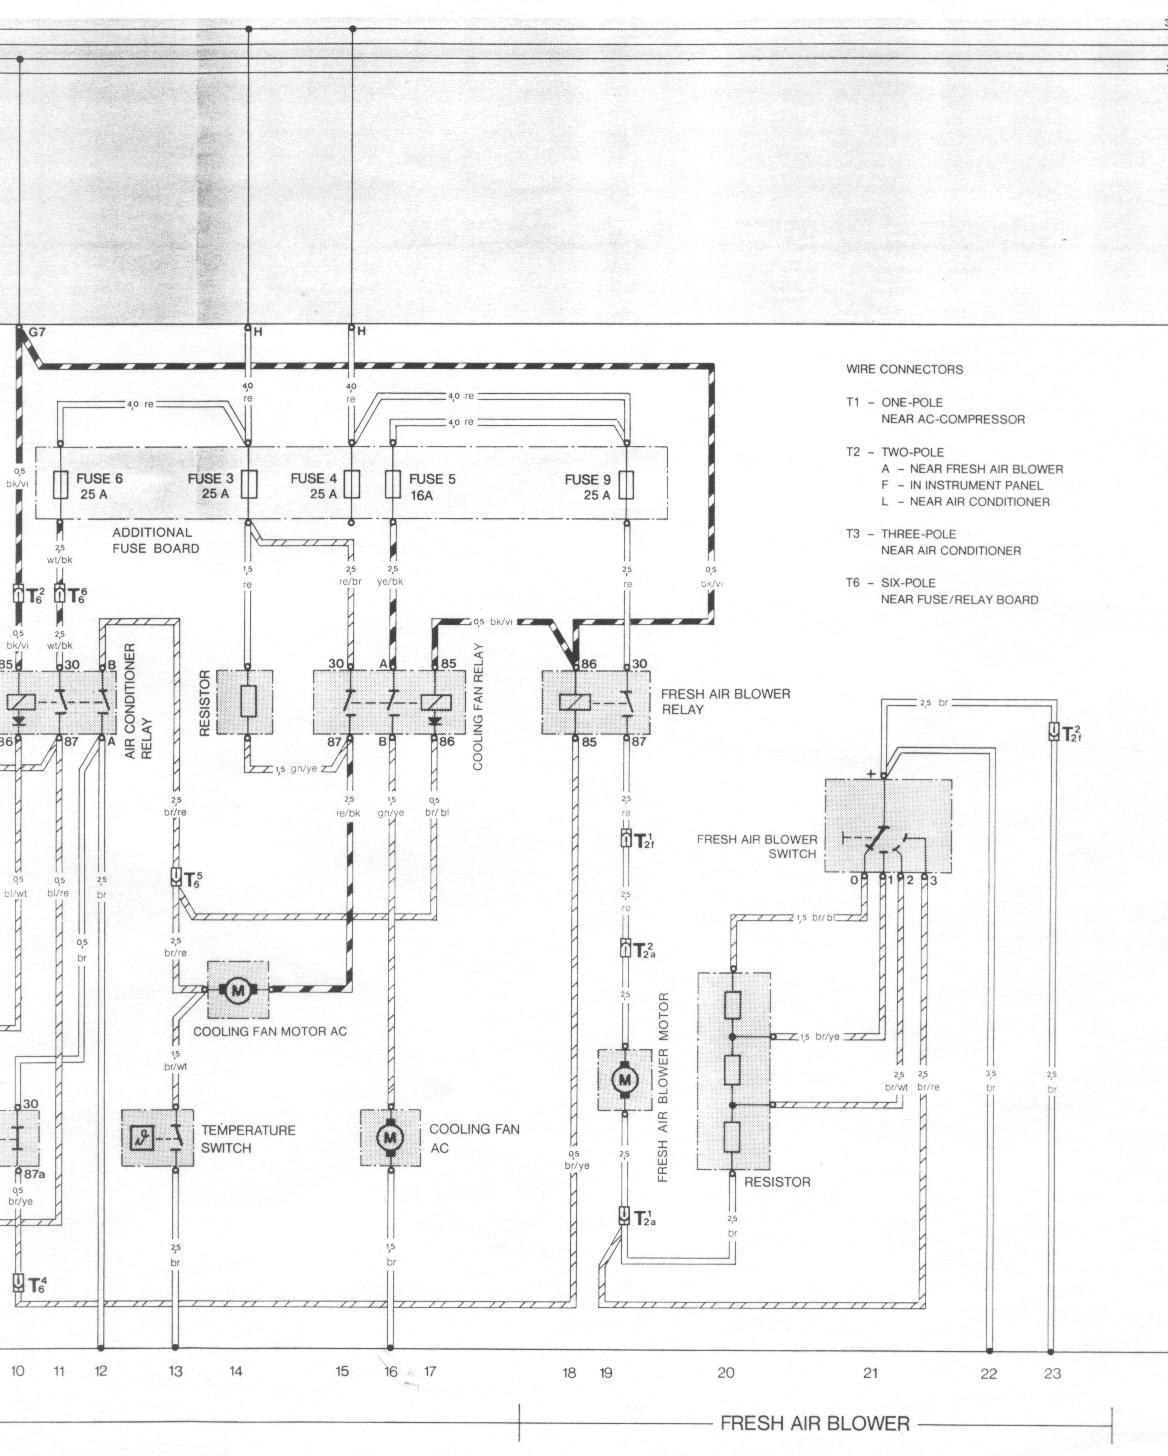 1978 porsche 924 wiring diagram square d water pump pressure switch pelican parts 944 electrical diagrams